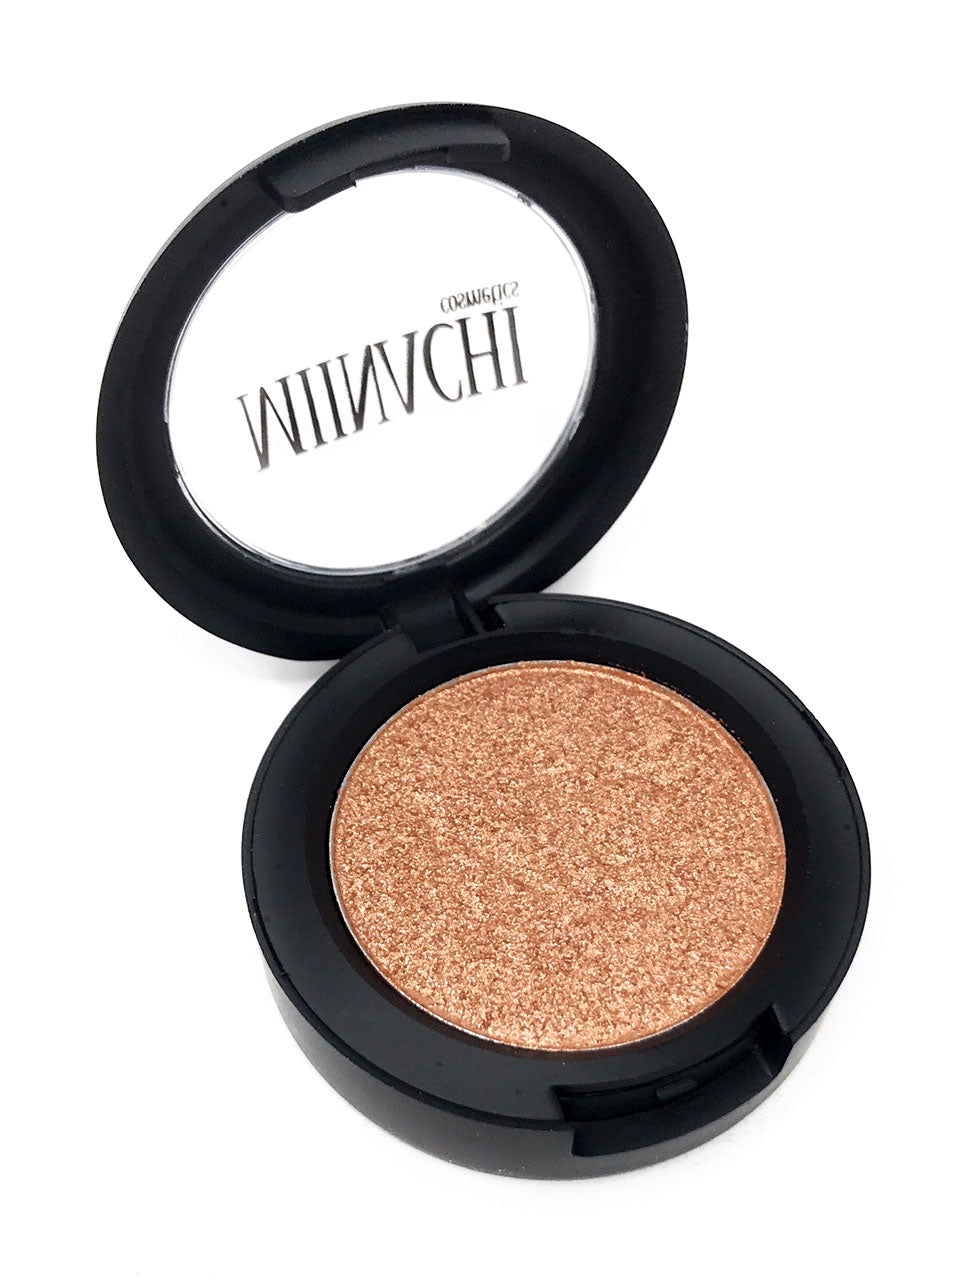 Single Pressed Highlighter In The Shade Egyptian Gold Glowing Makeup Cosmetics Shimmer